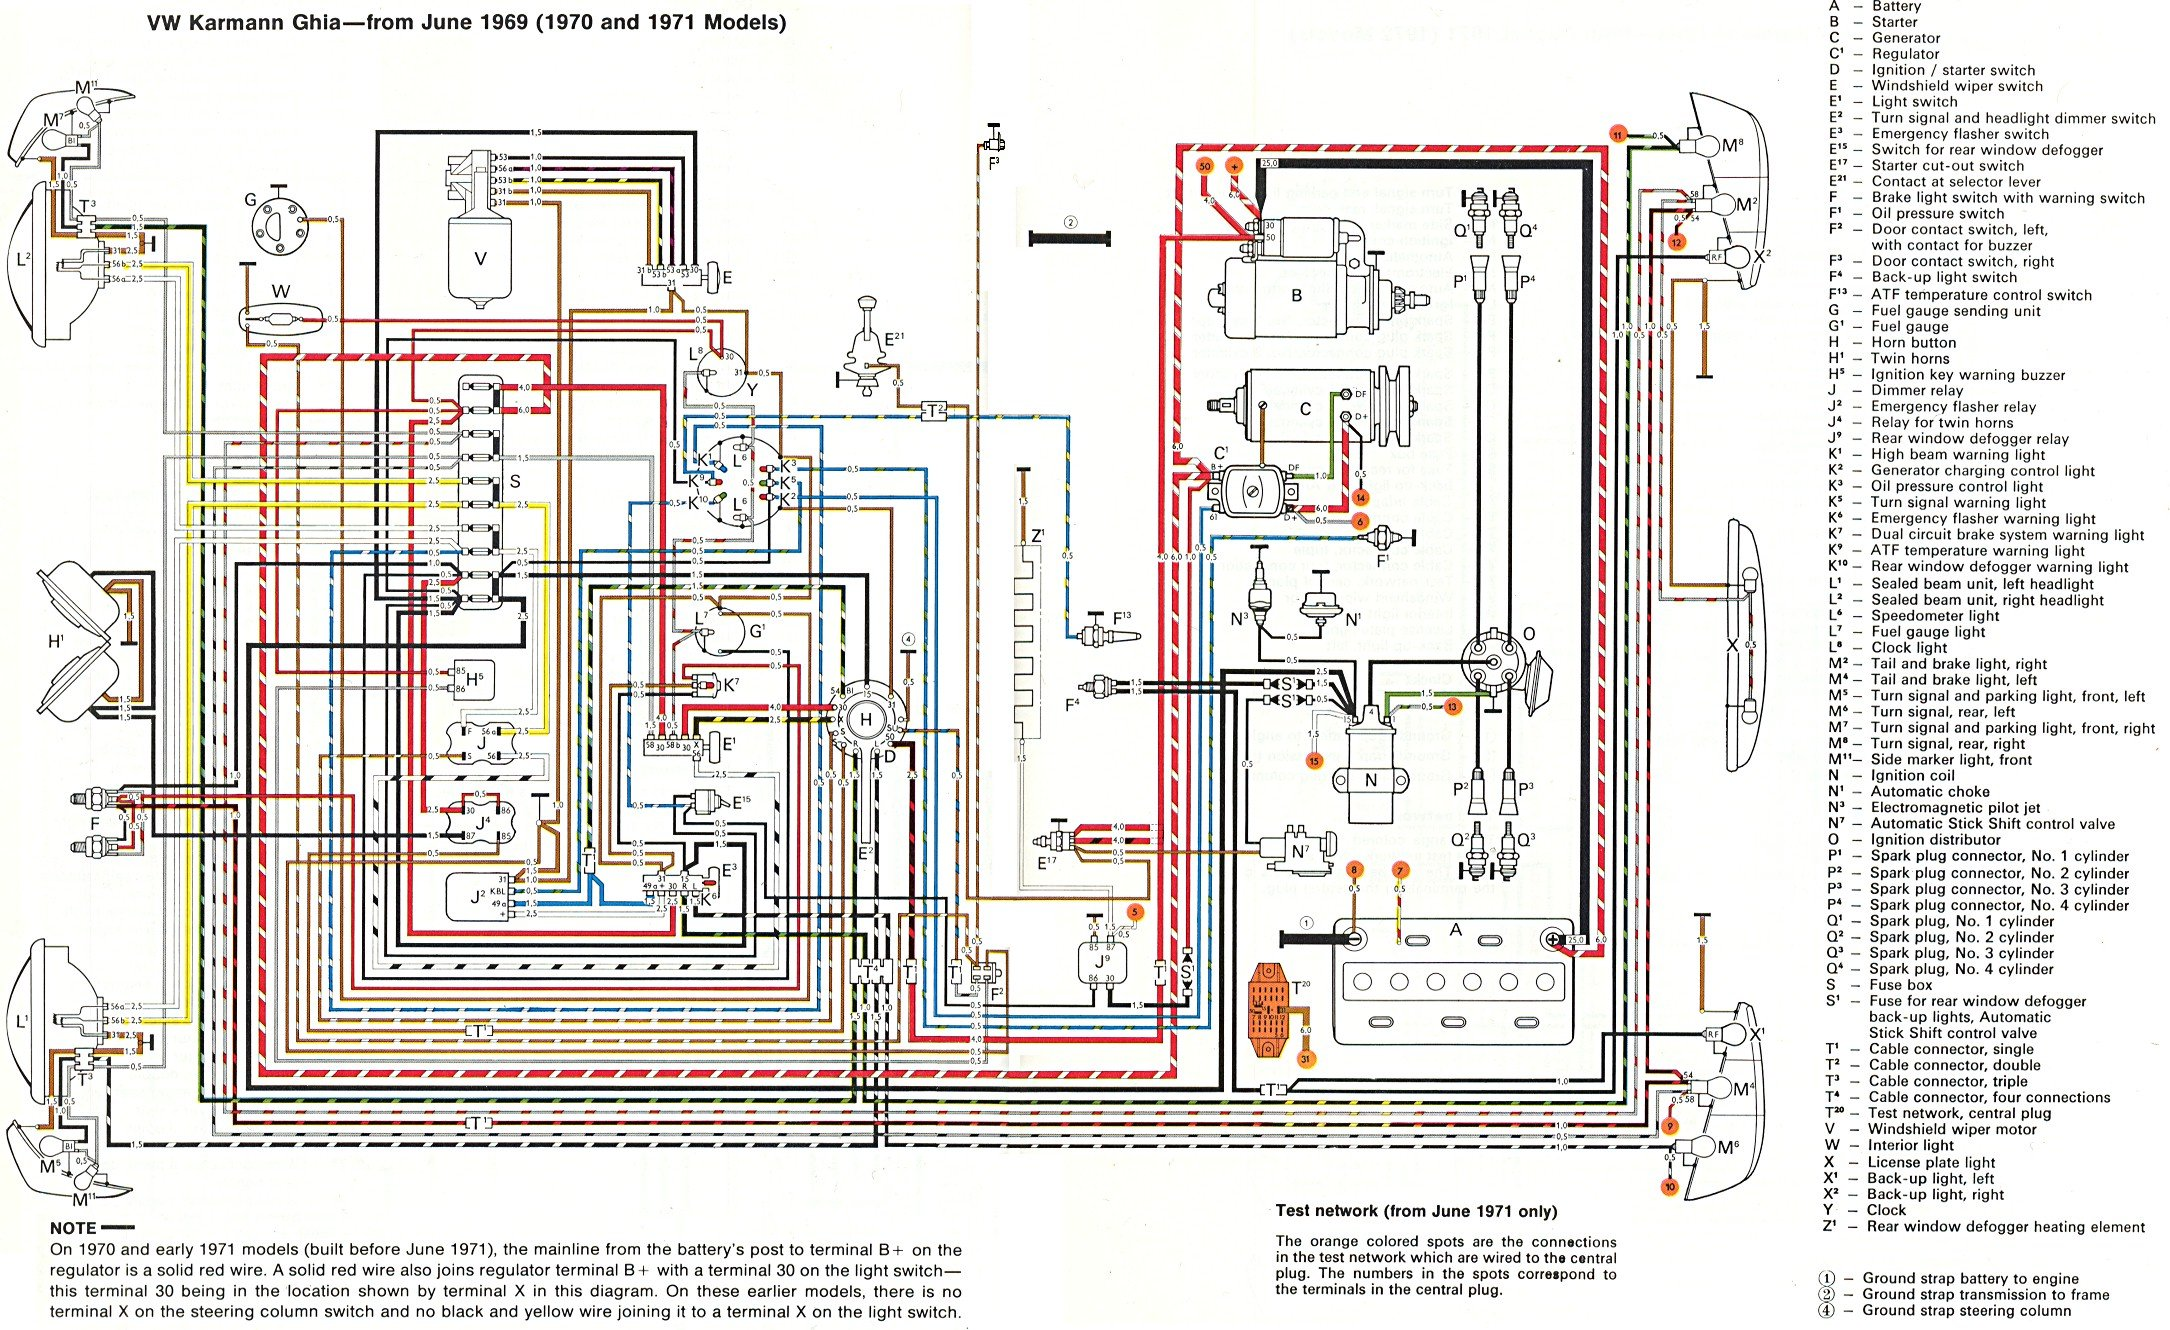 vw beetle wiring diagram image wiring 1970 vw bug wiring diagram jodebal com on 1970 vw beetle wiring diagram